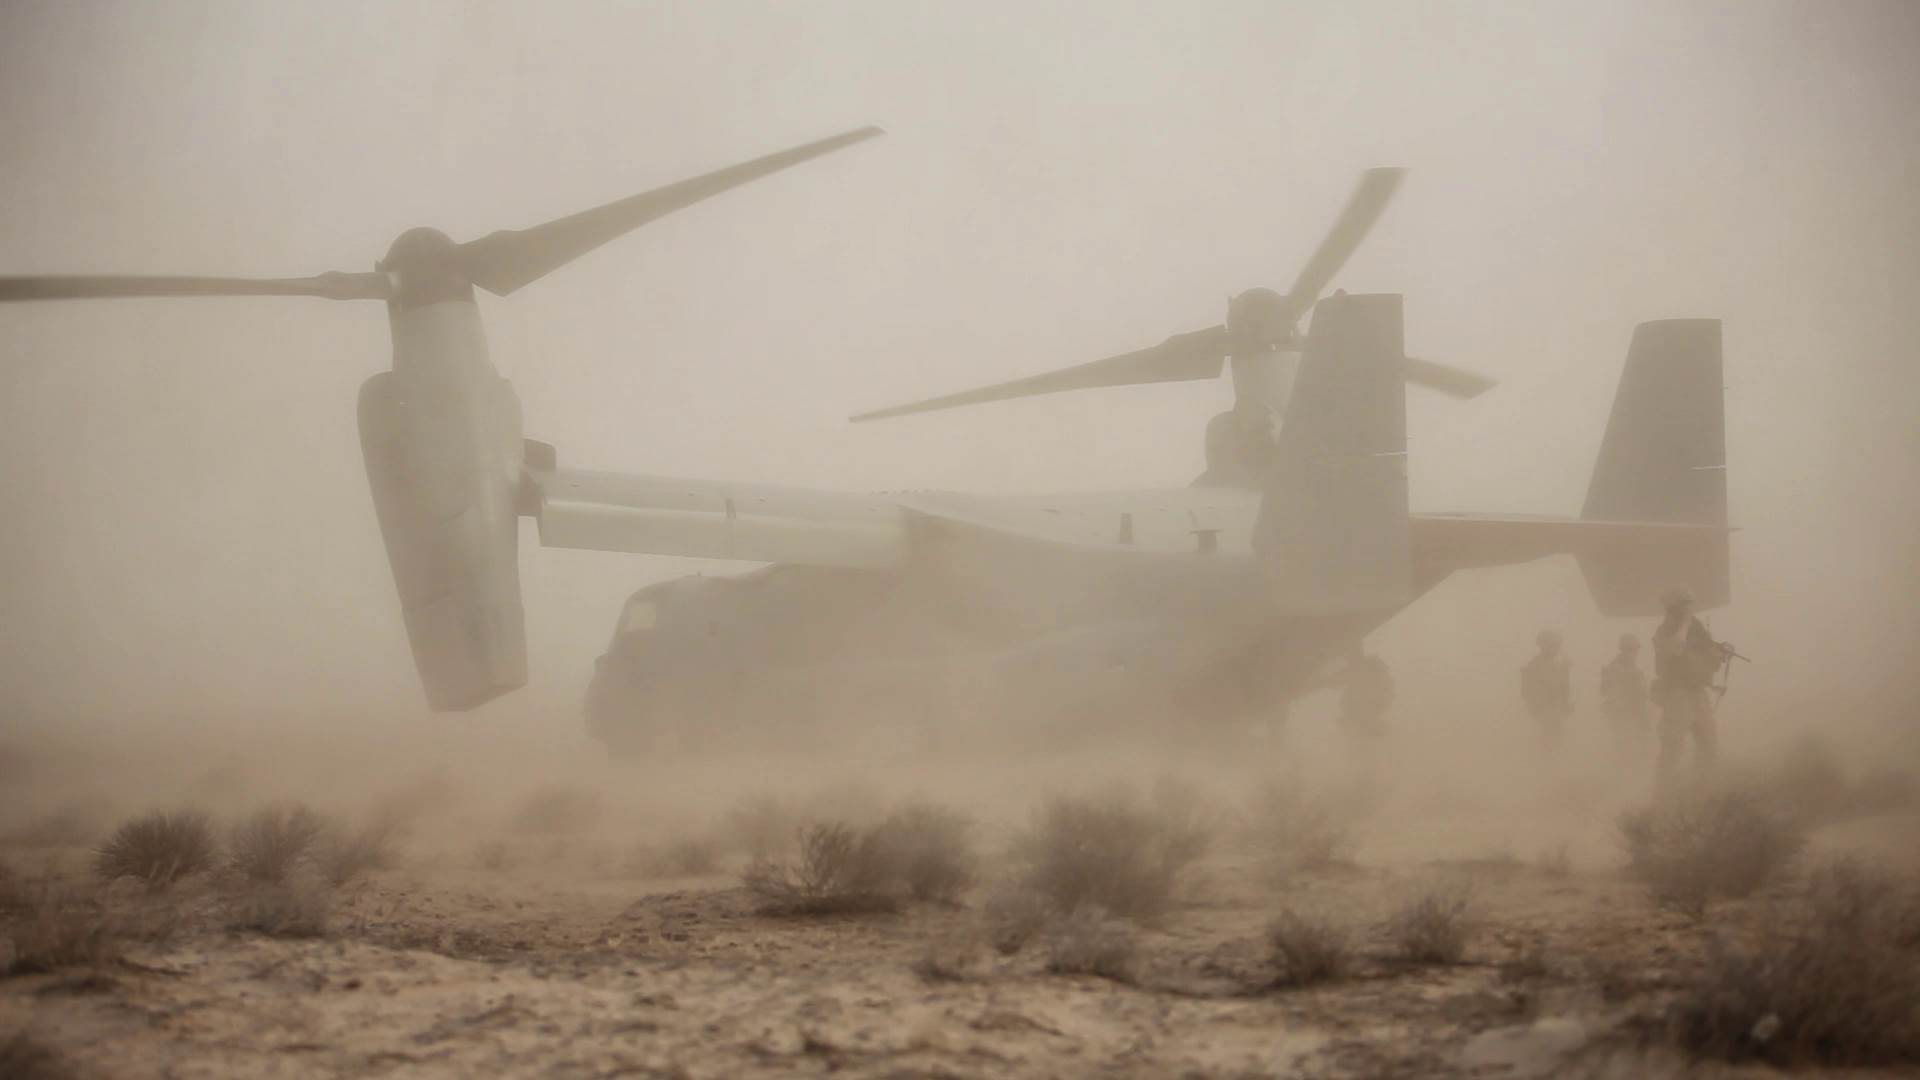 Two troops injured when Marine Osprey crashes in Syria